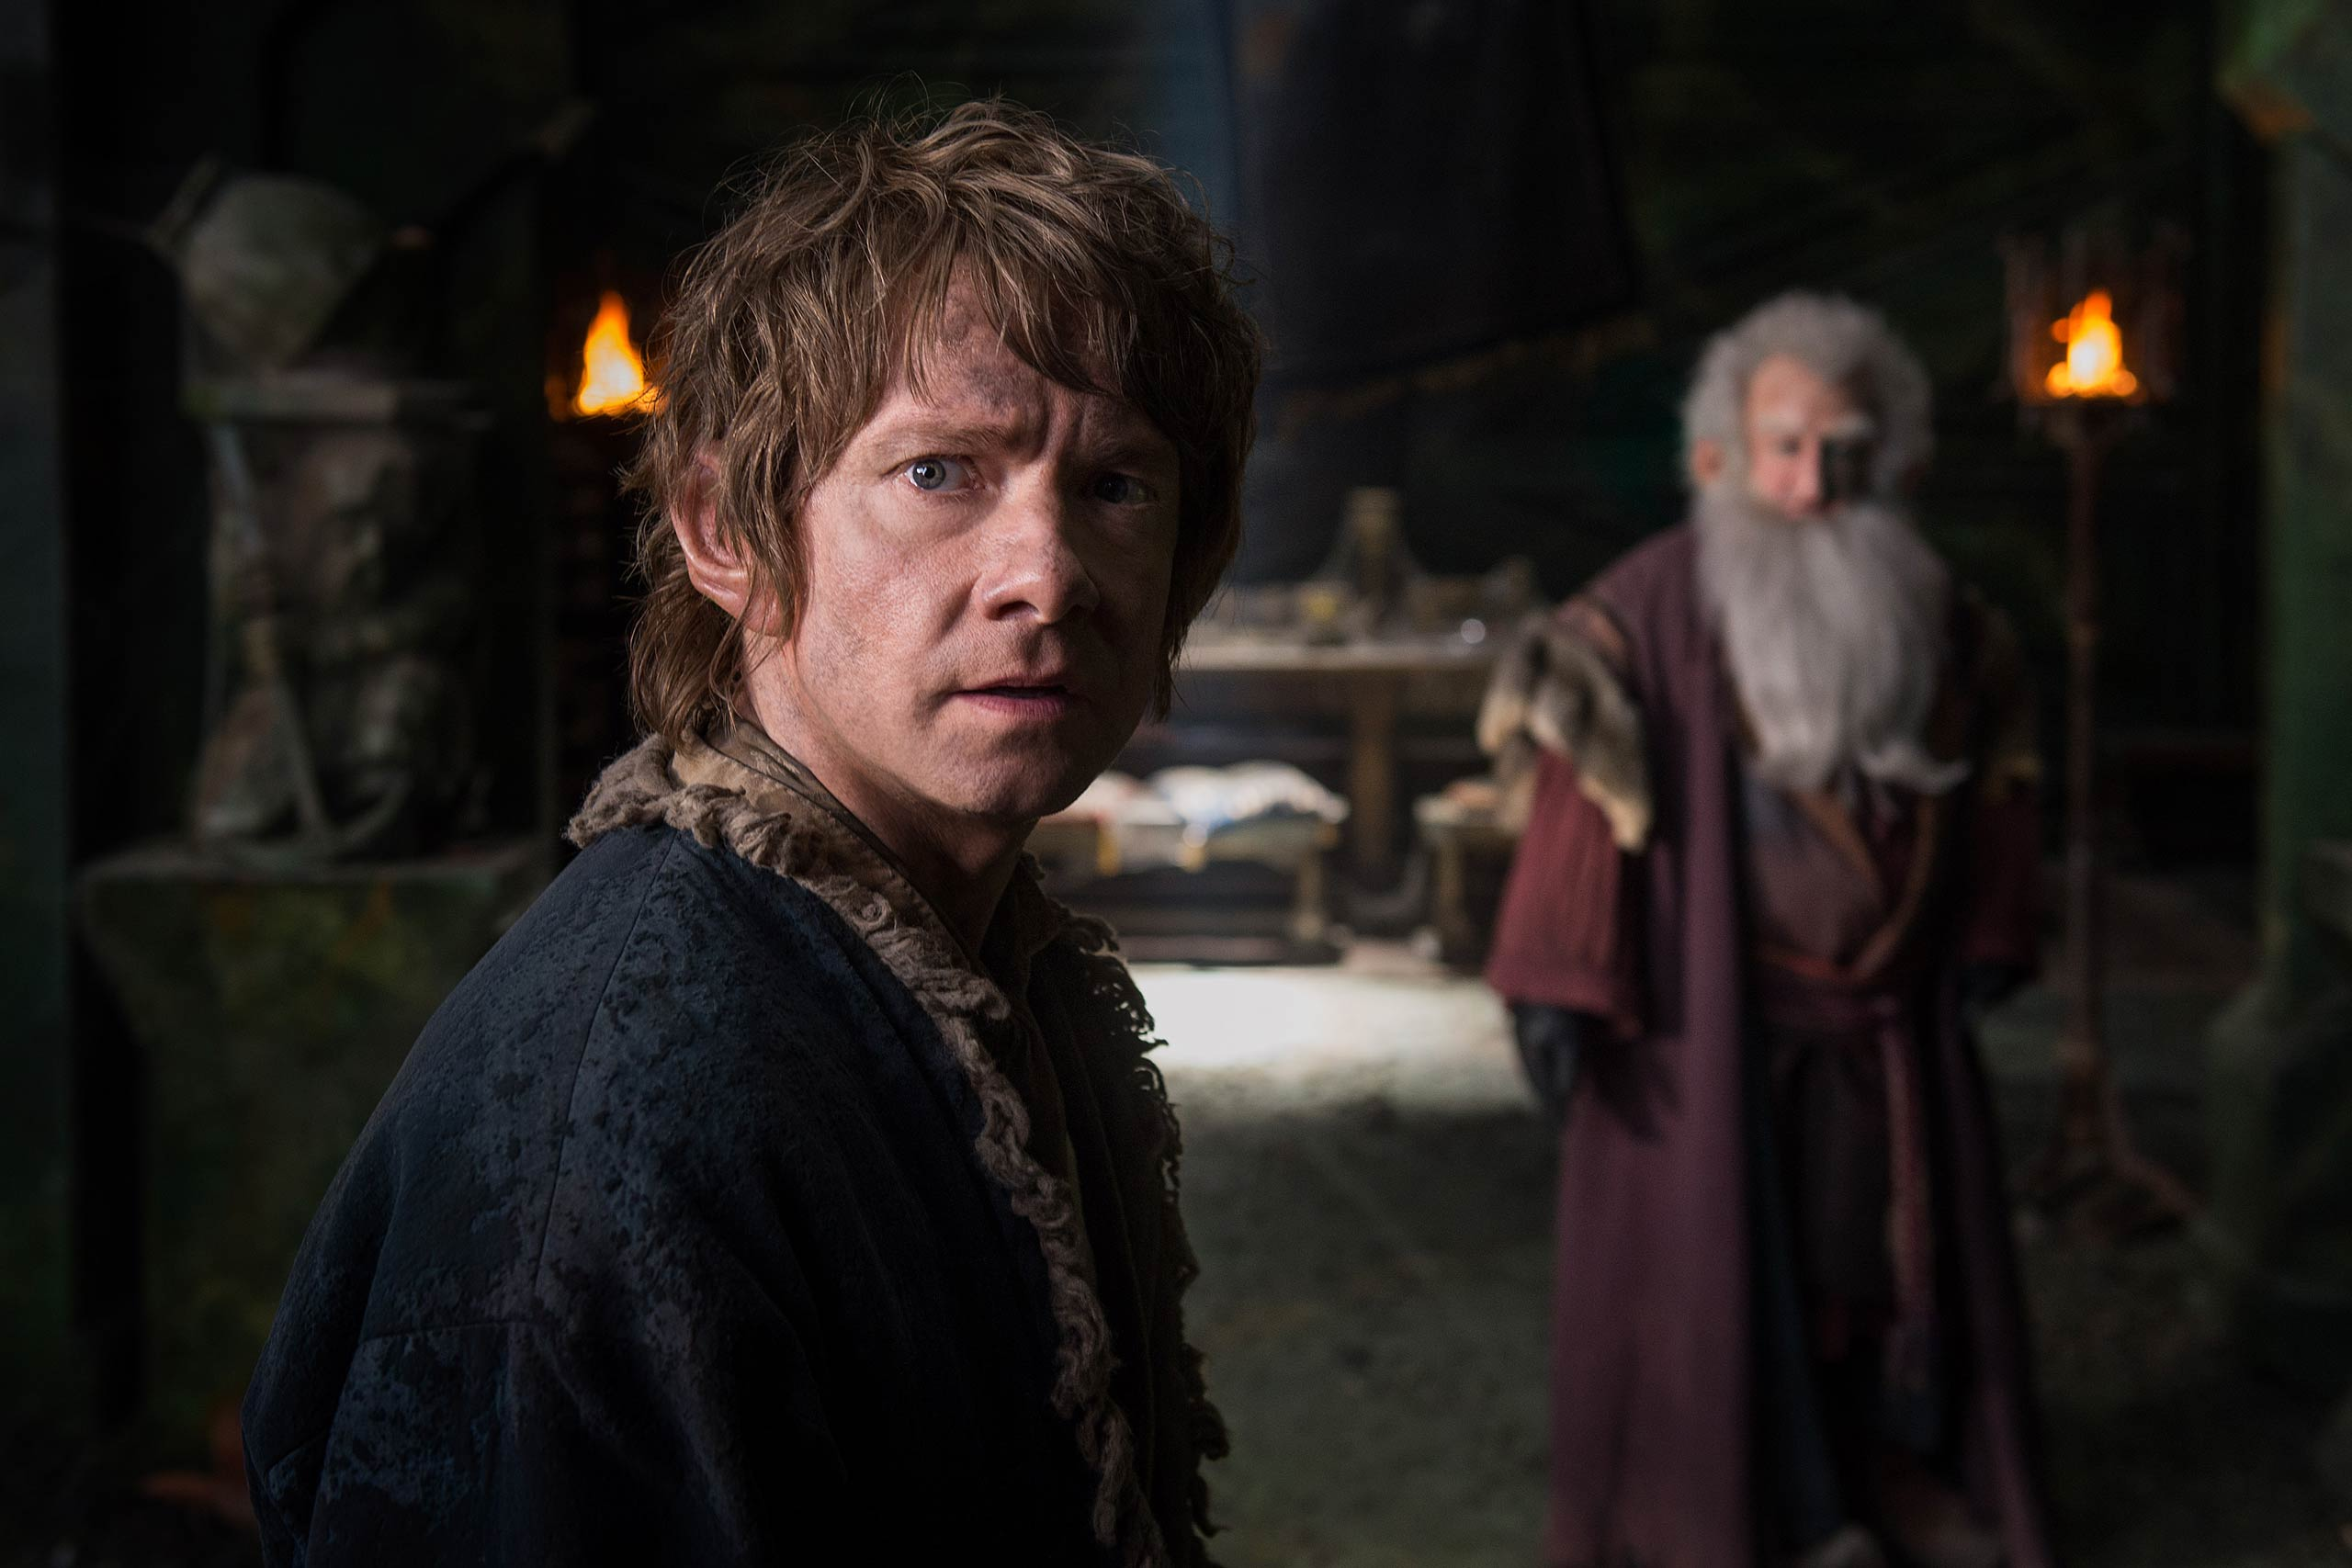 16. The Hobbit: The Battle of the Five Armies - $175,567,000